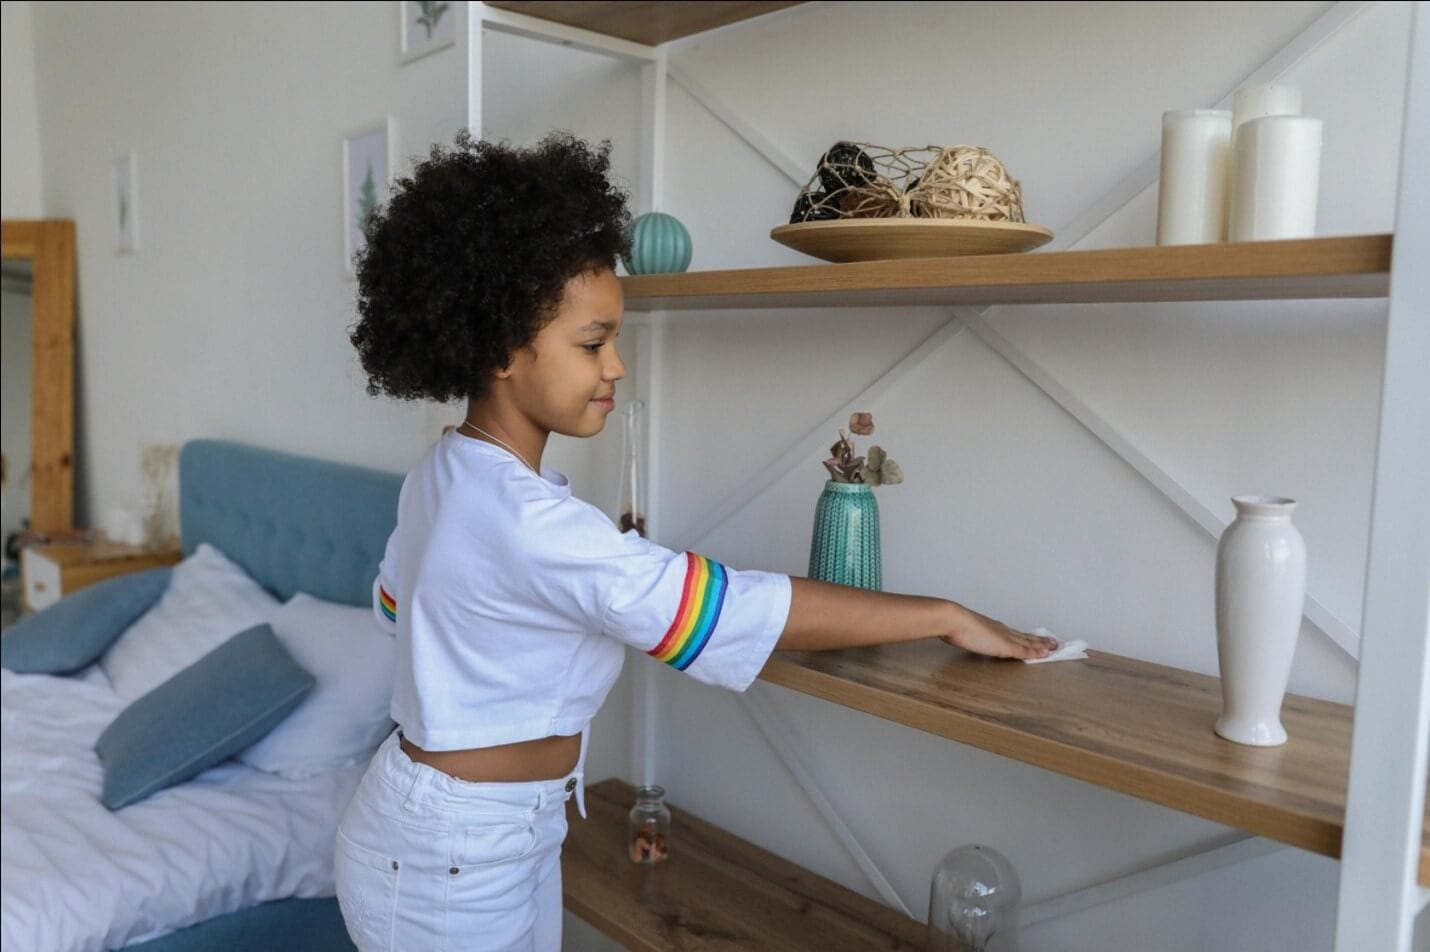 A young girl cleaning shelves.